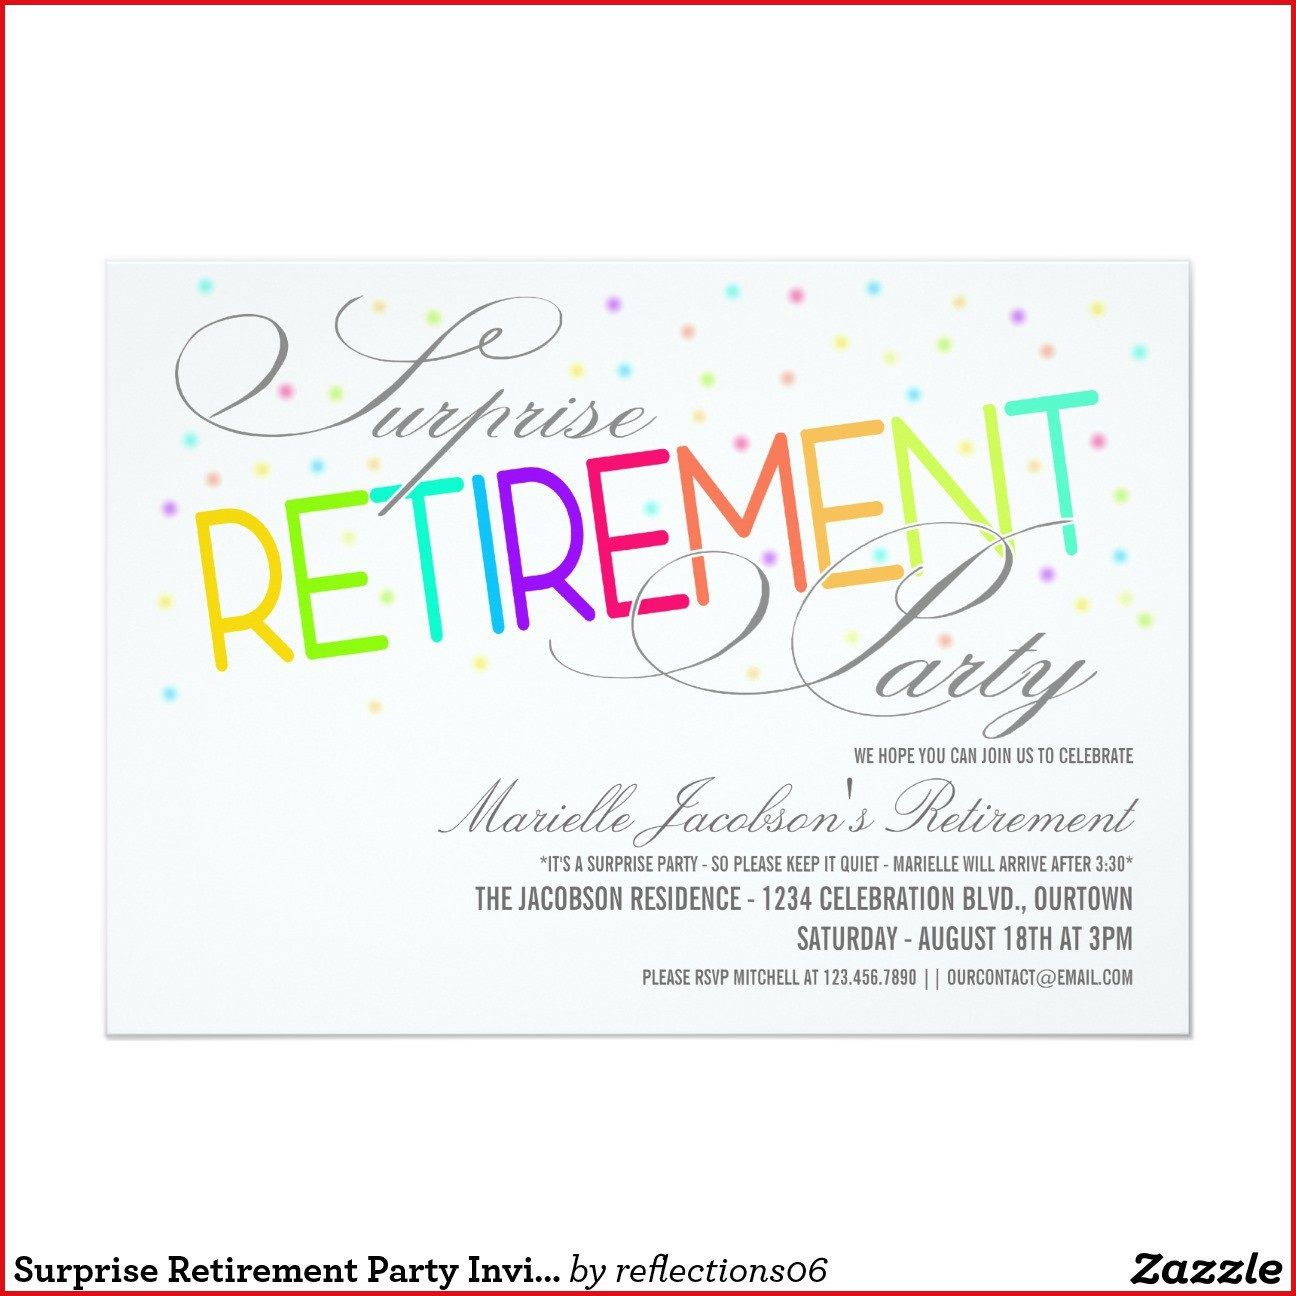 009 Marvelou Retirement Farewell Party Invitation Template Free Picture Full